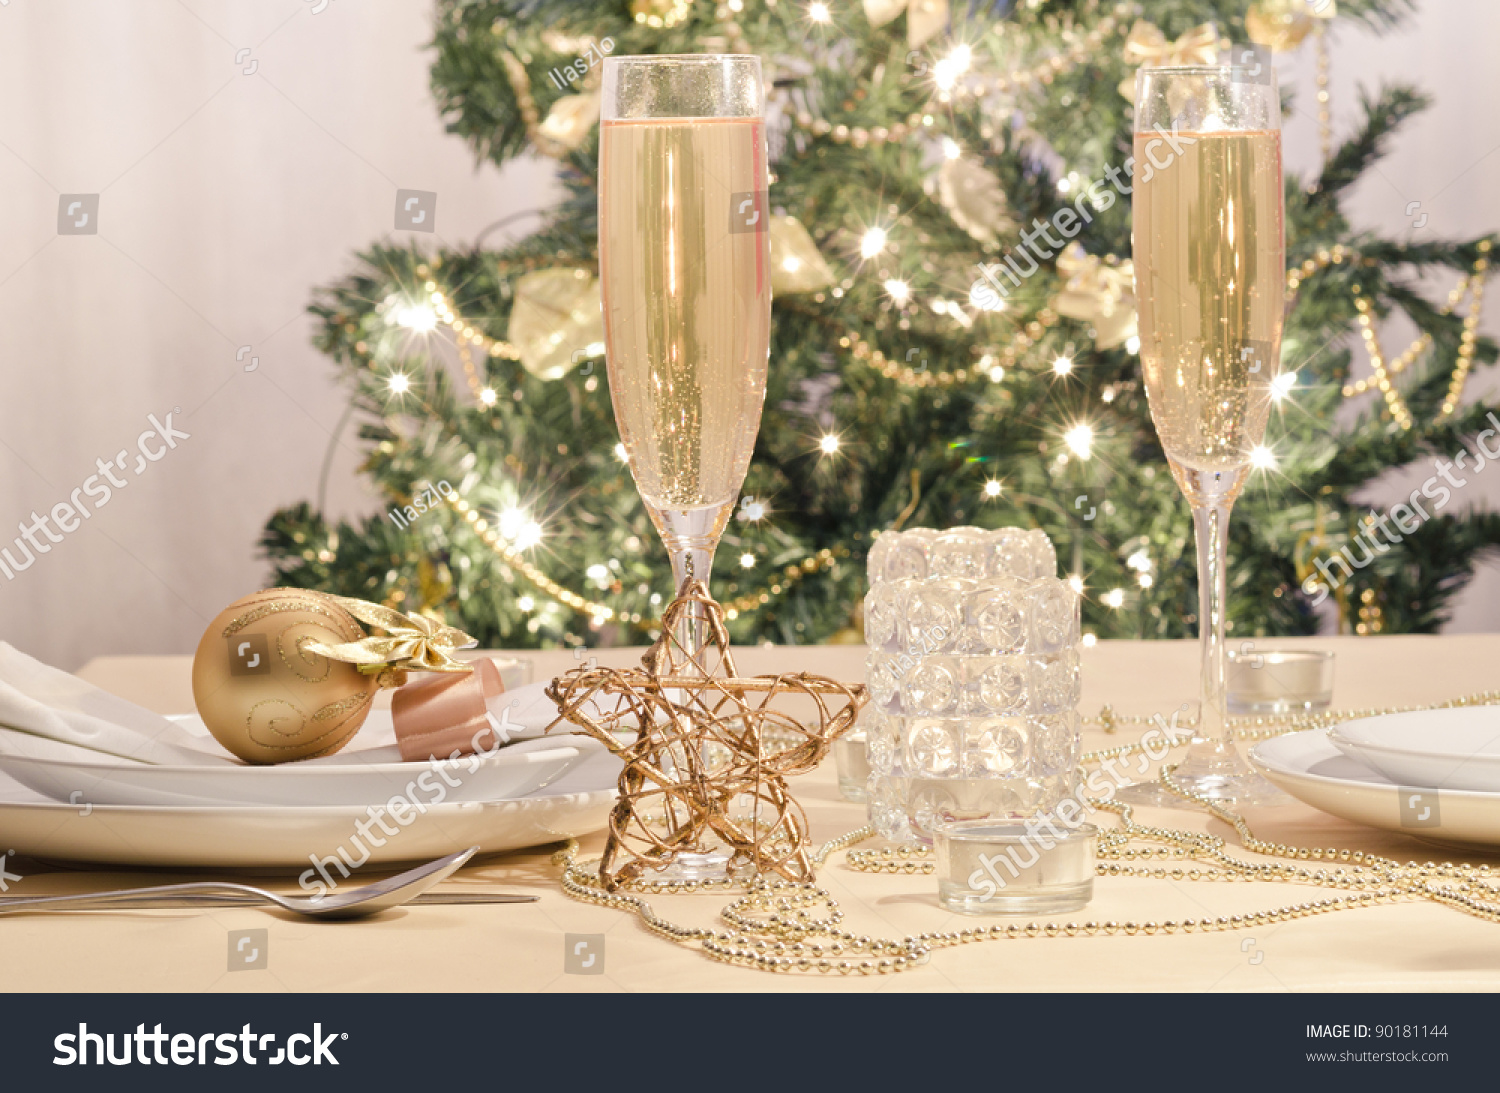 Christmas Tables Decorated A Decorated Christmas Dining Table With Champagne Glasses